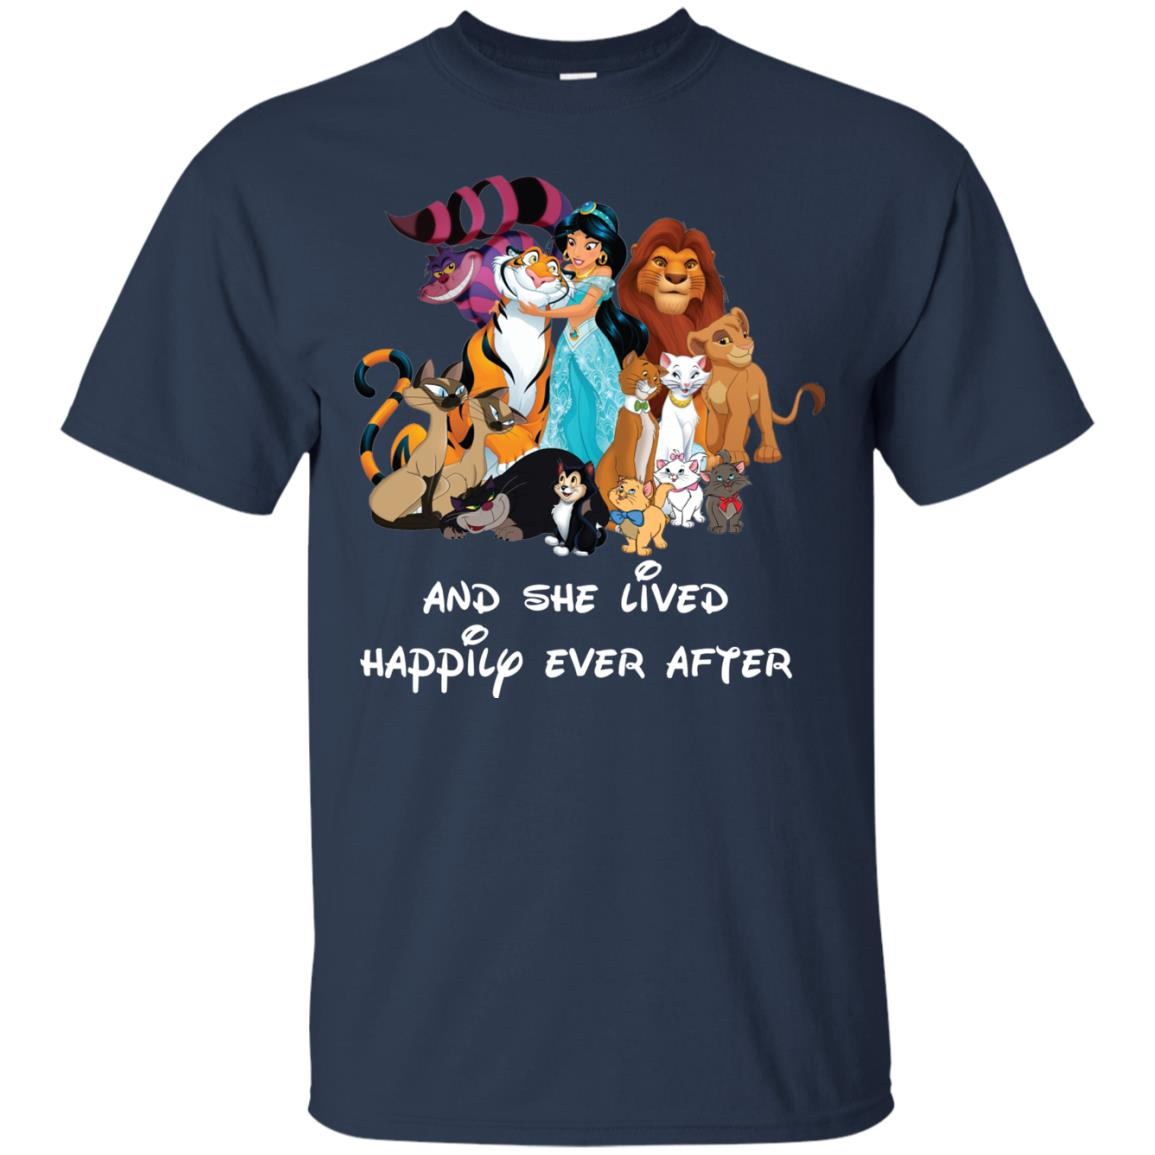 image 49px Disney shirt: And she lived happily ever after t shirt